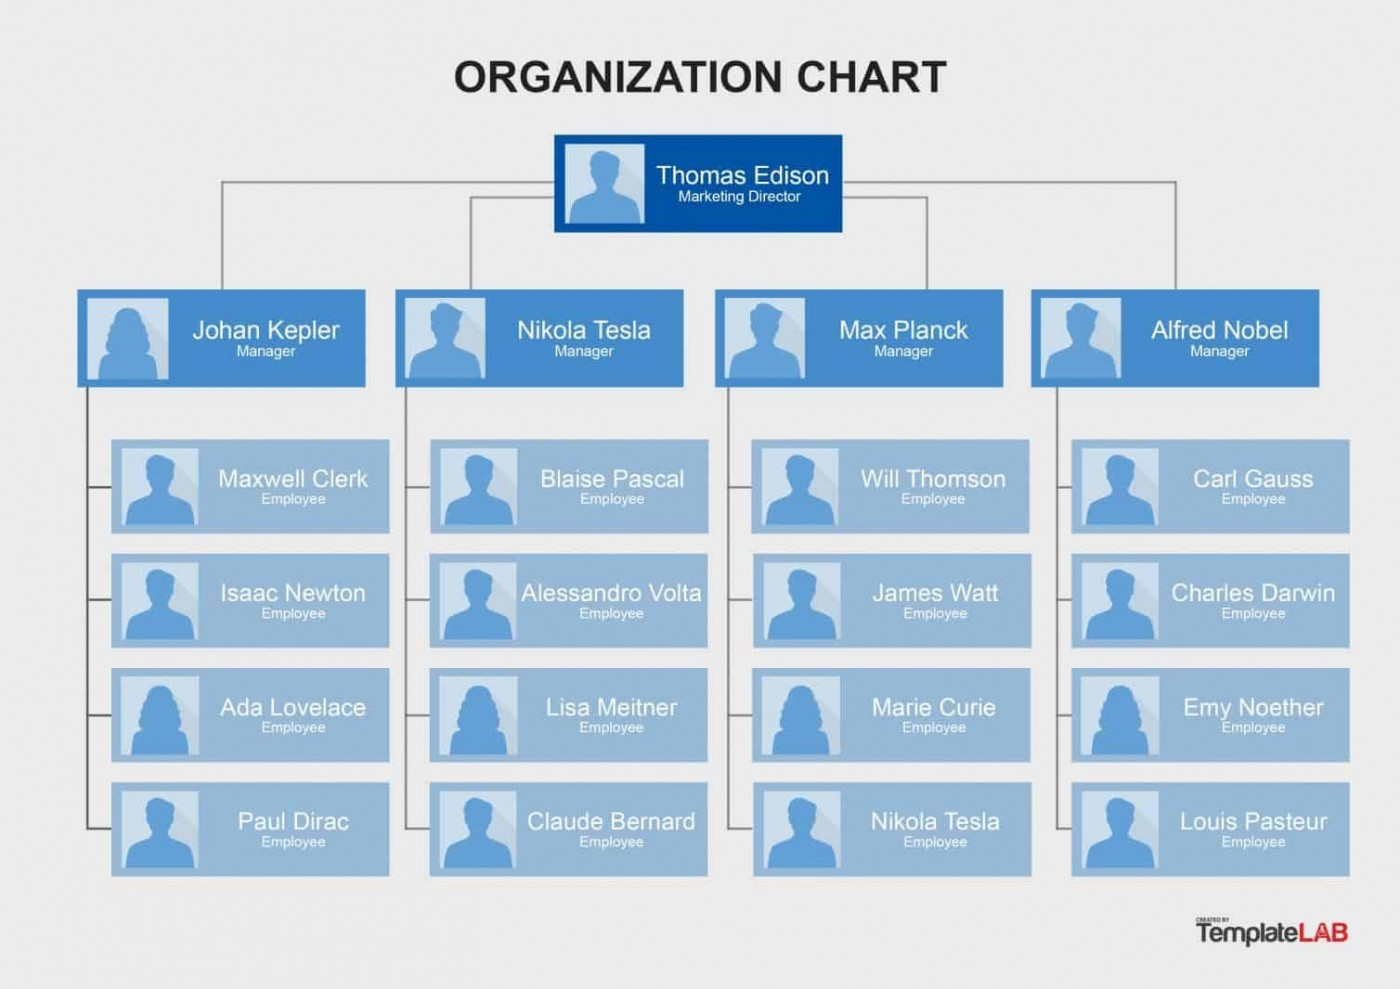 009 Rare Organizational Chart Template Excel Image  Org Download Free 20101400